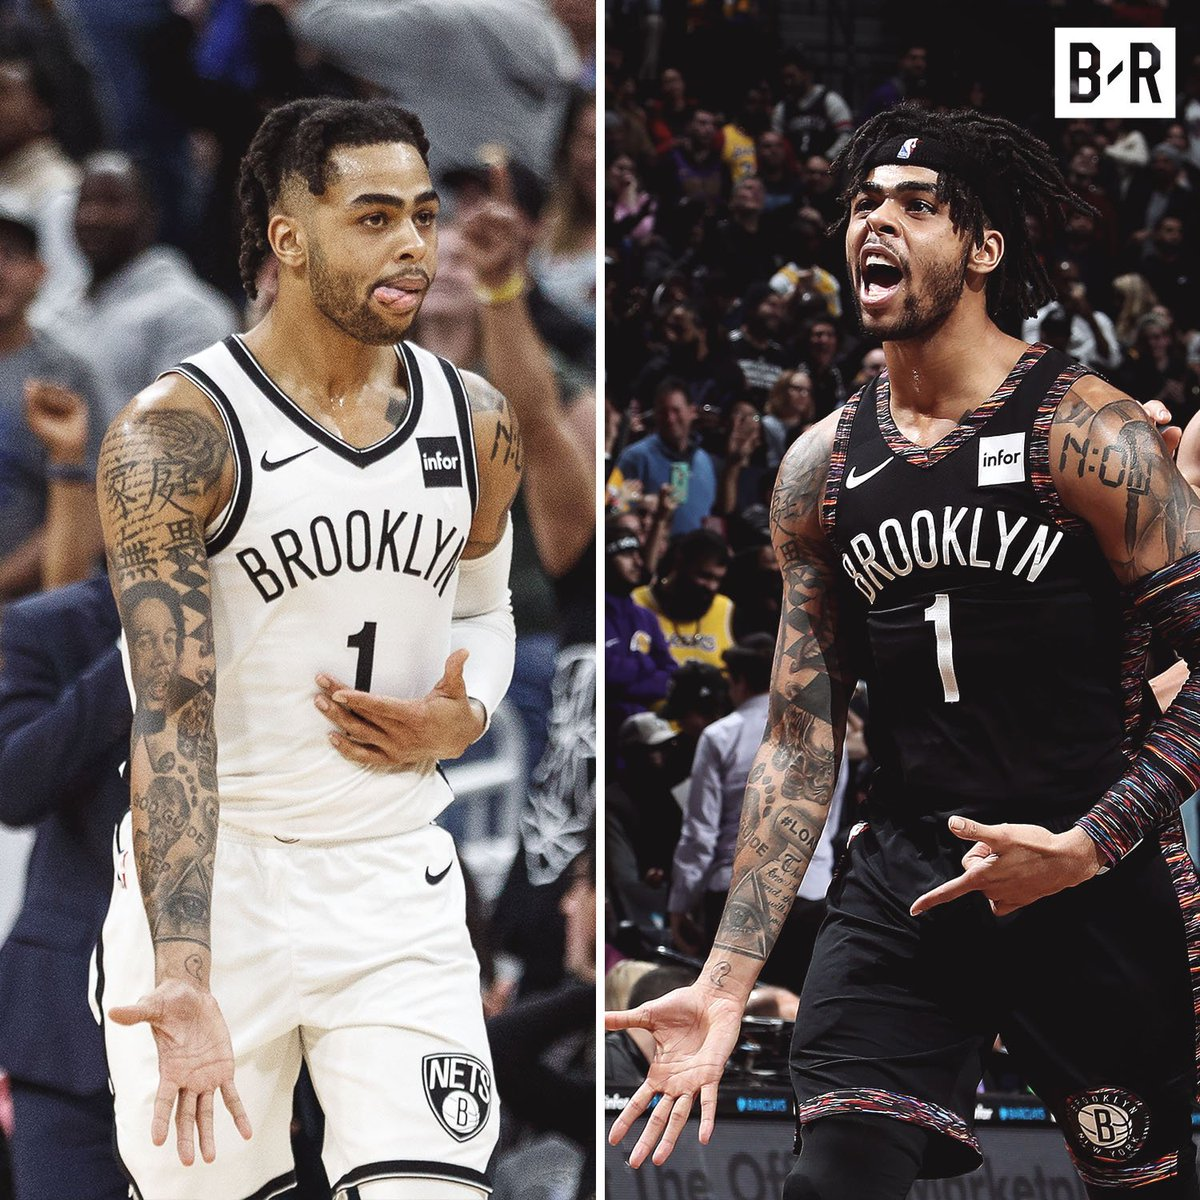 D-Lo (22 years old) is the youngest player in NBA history to hit 500 three-pointers ❄️  (h/t @APOOCH)